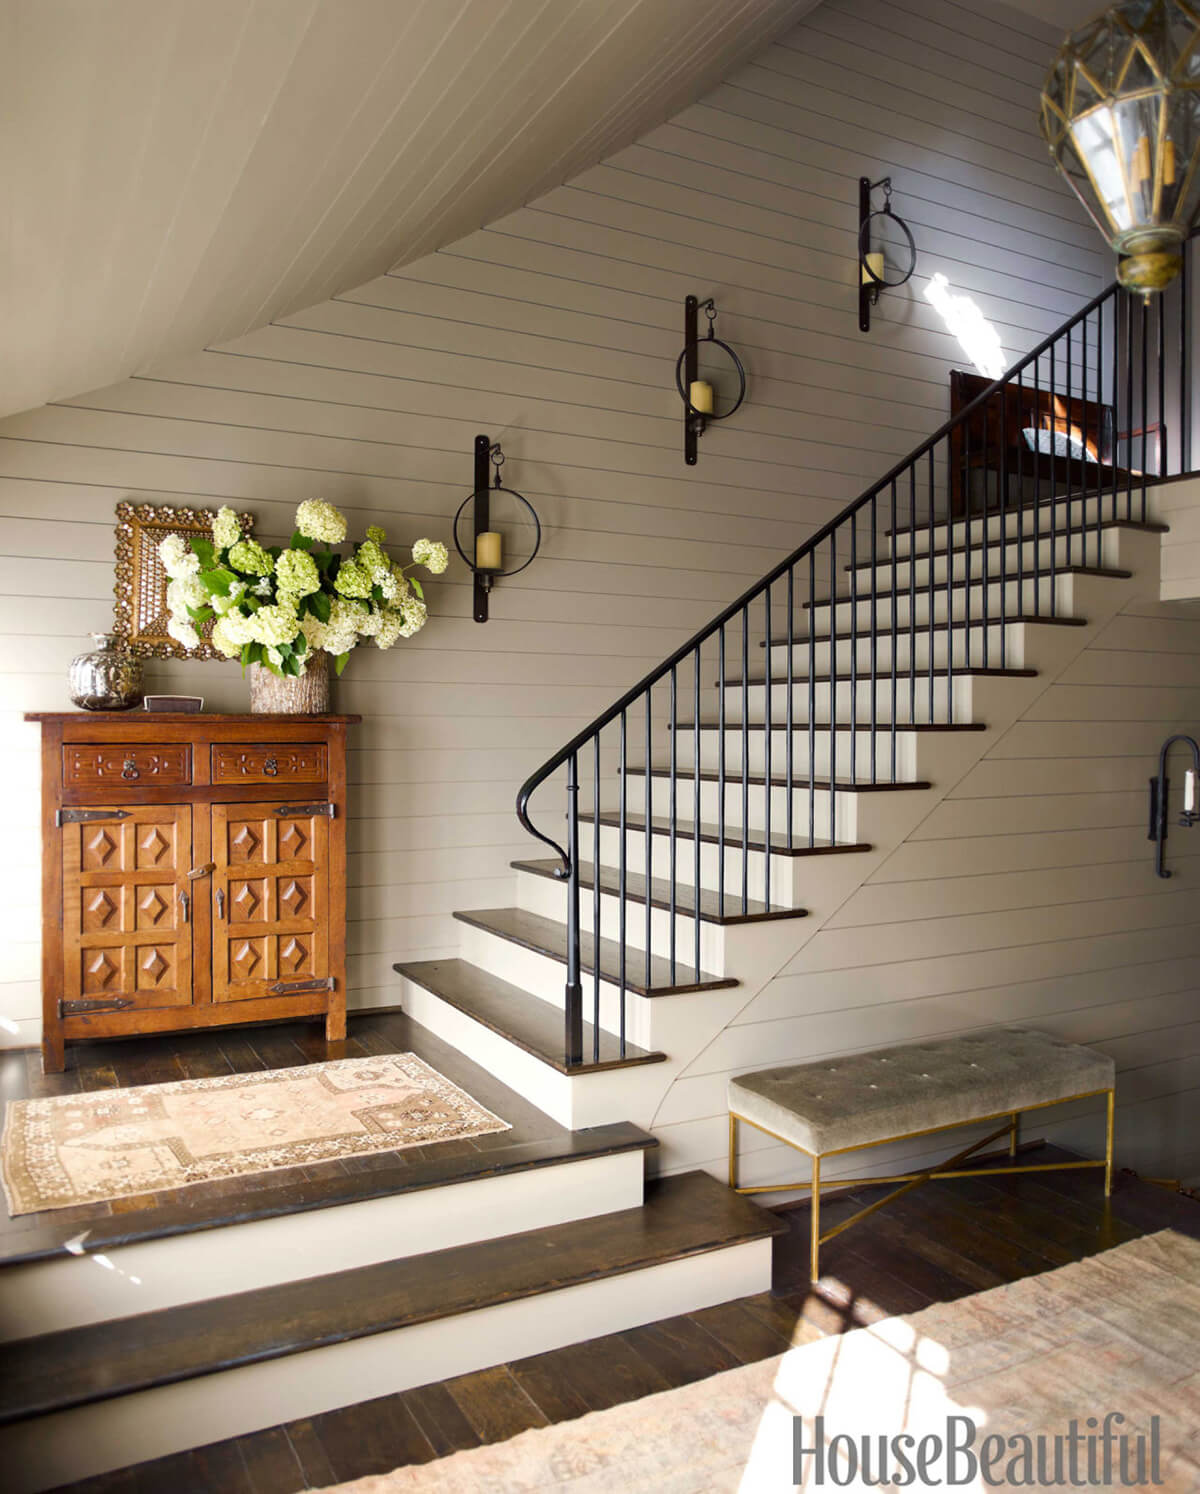 25 Stair Design Ideas For Your Home: 28 Best Stairway Decorating Ideas And Designs For 2019